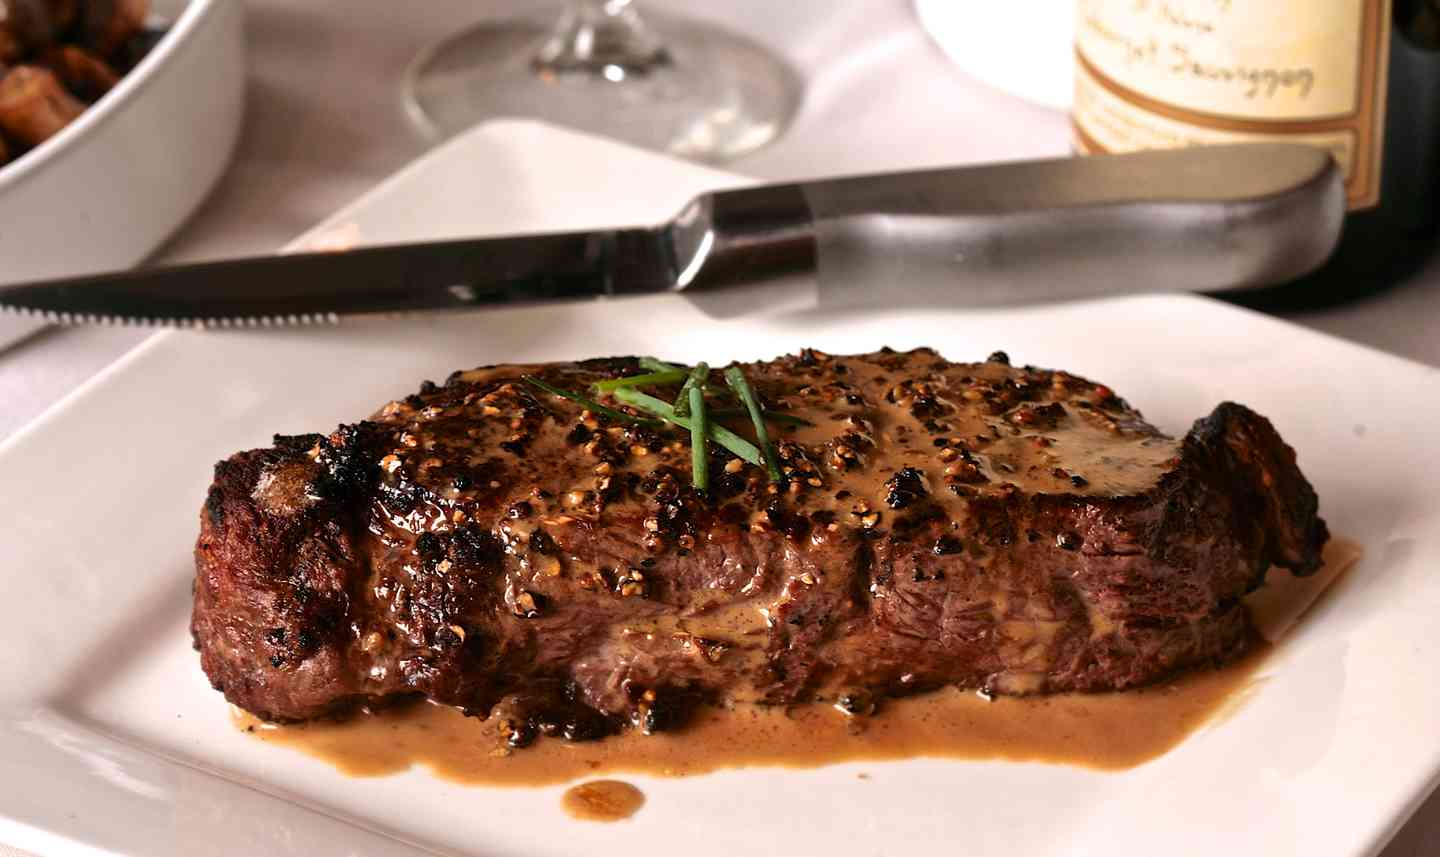 *16 oz. New York Sirloin